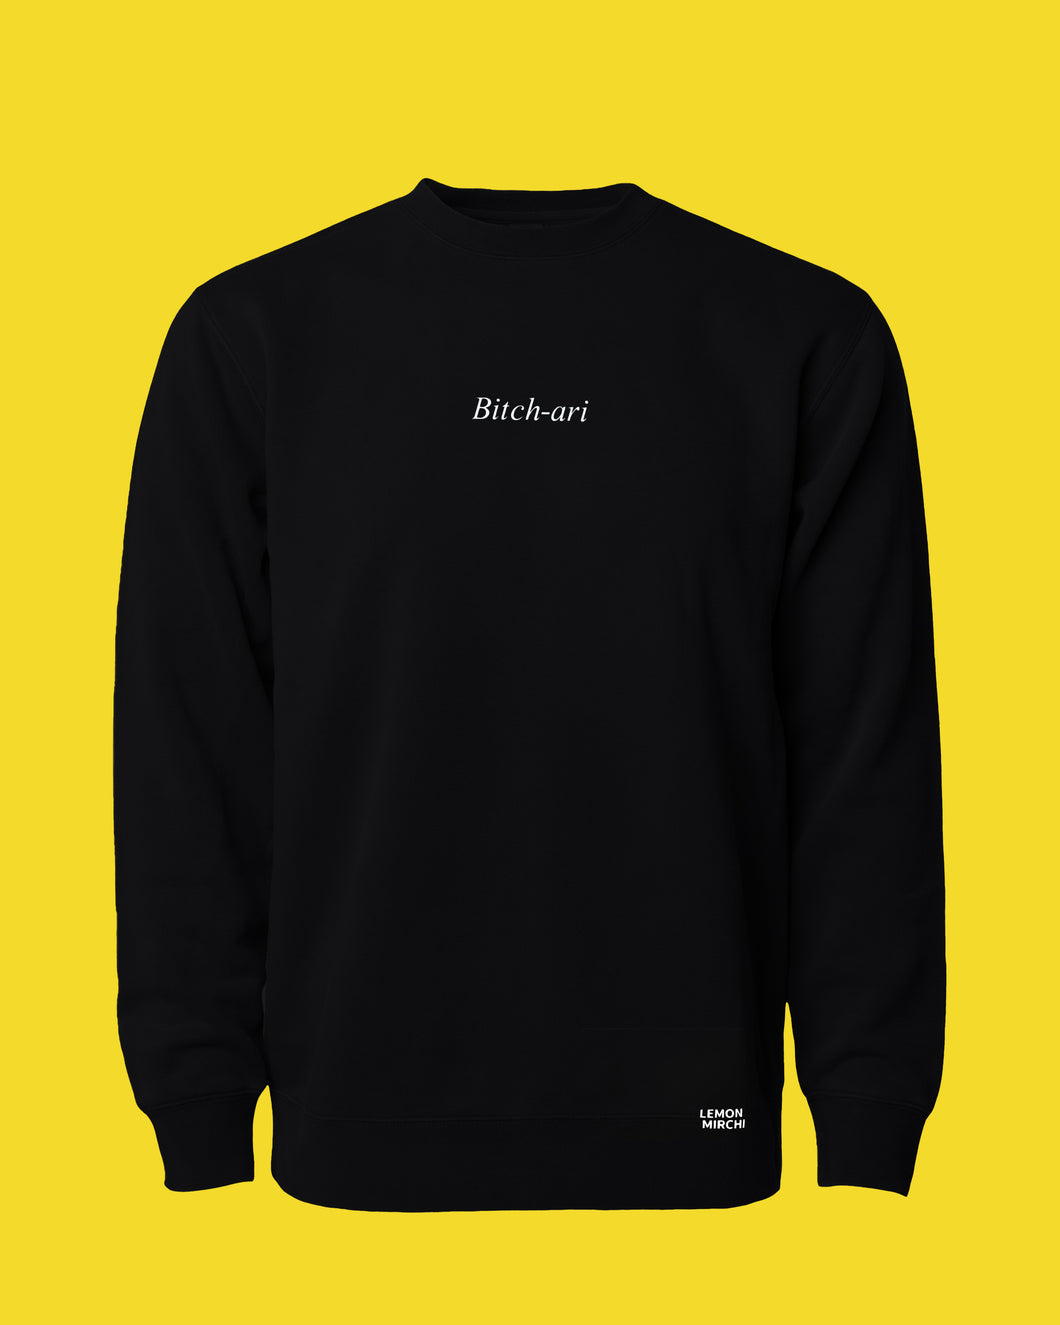 Bitch-ari Crewneck Sweatshirt